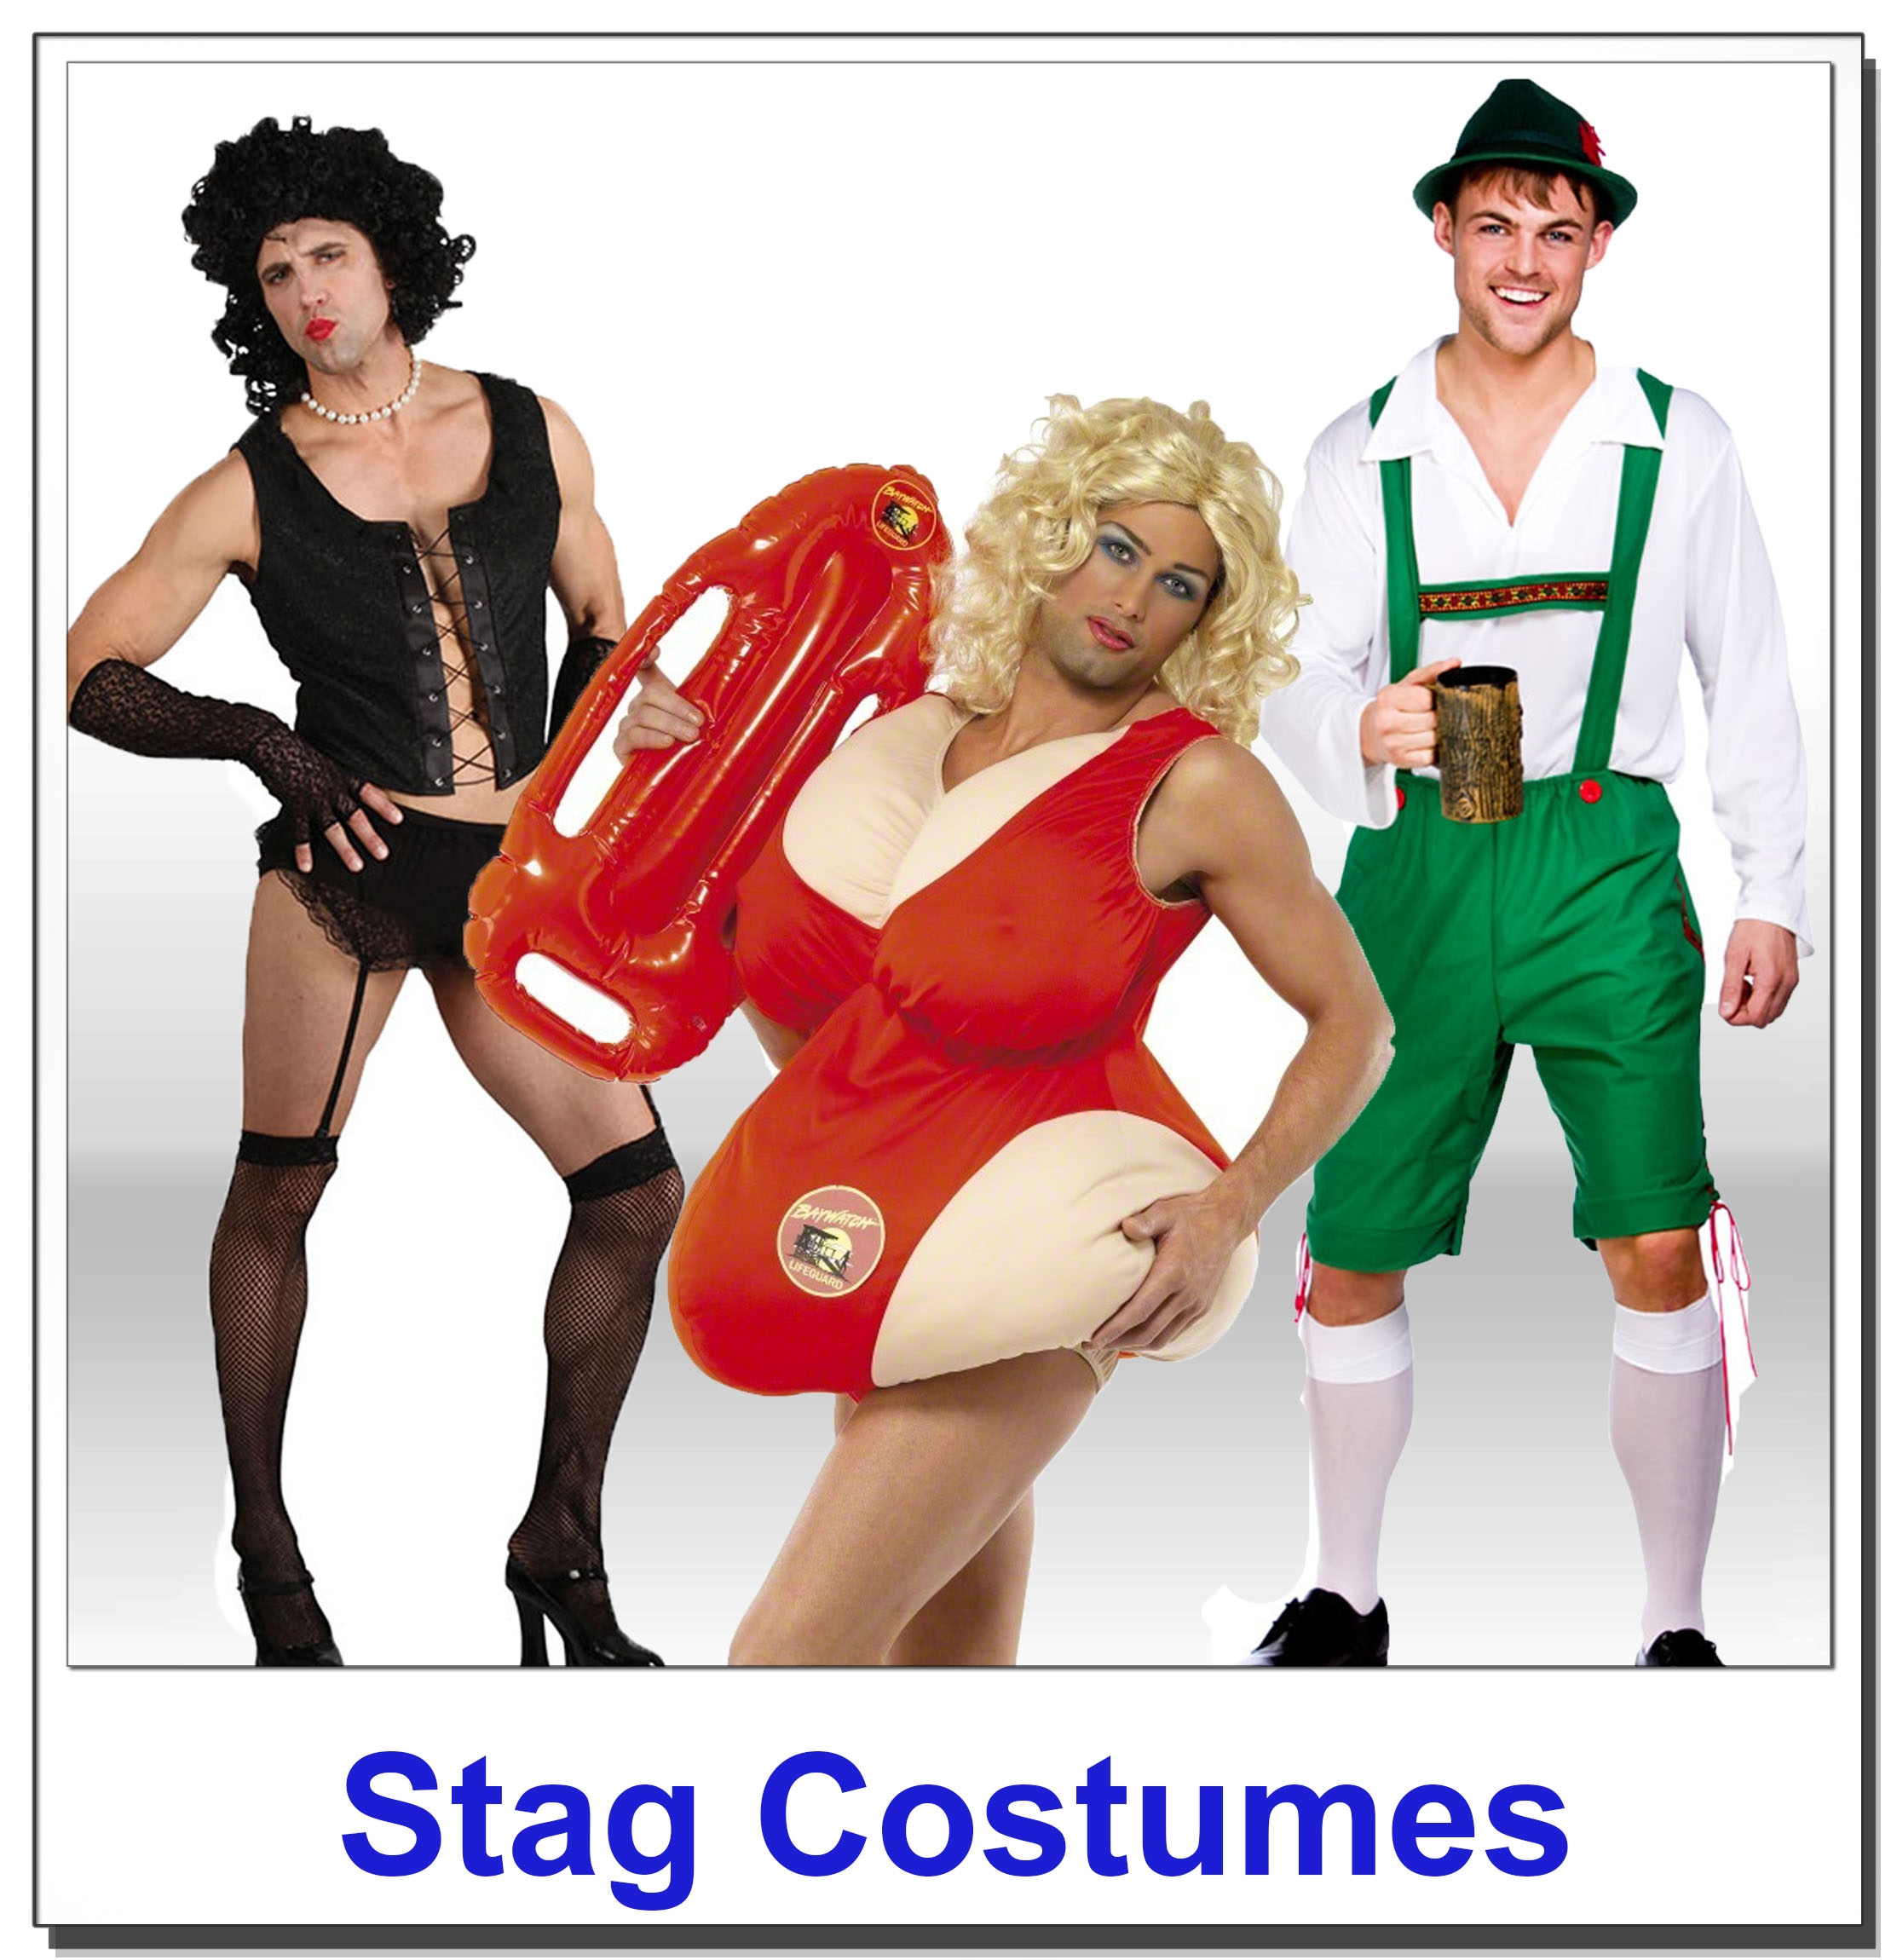 Stag Costumes